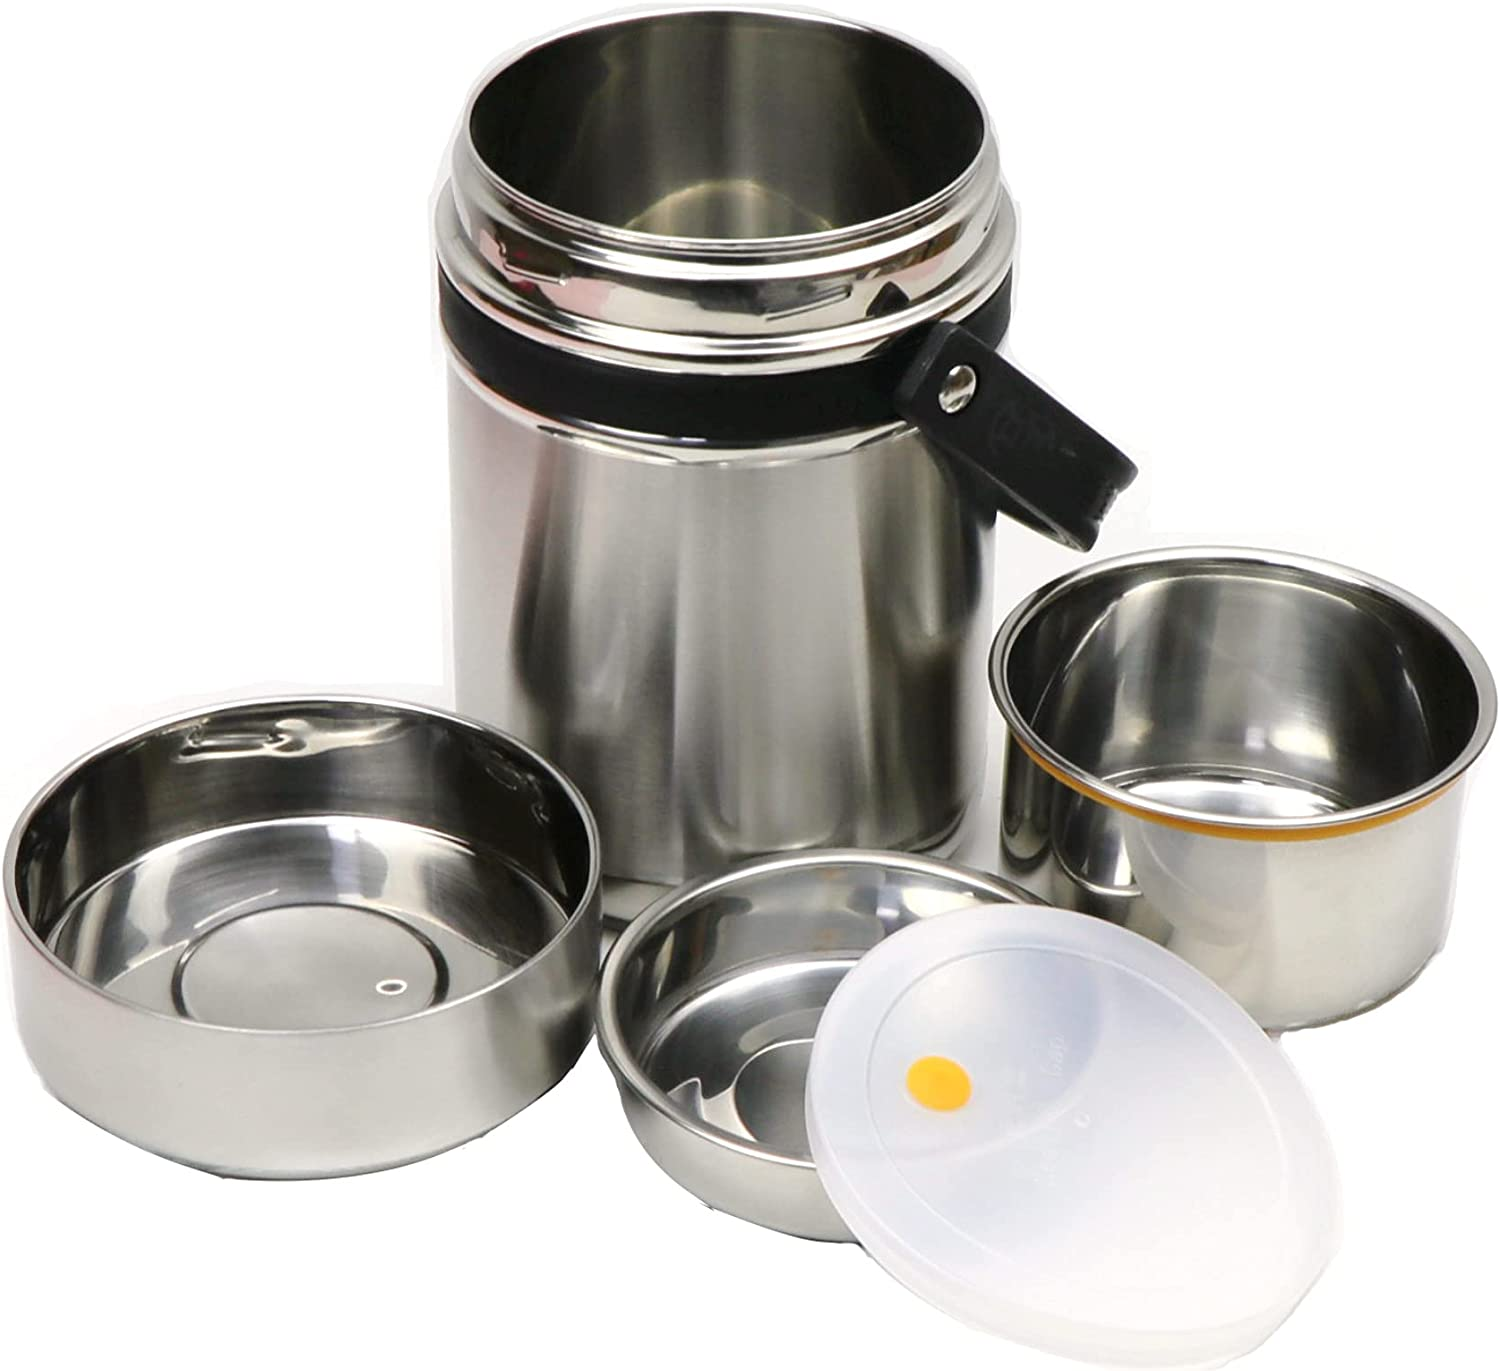 Lacusmall Insulated Lunch Container Hot Food Jar Vacuum Food Container Stainless Steel Thermal Soup Containers